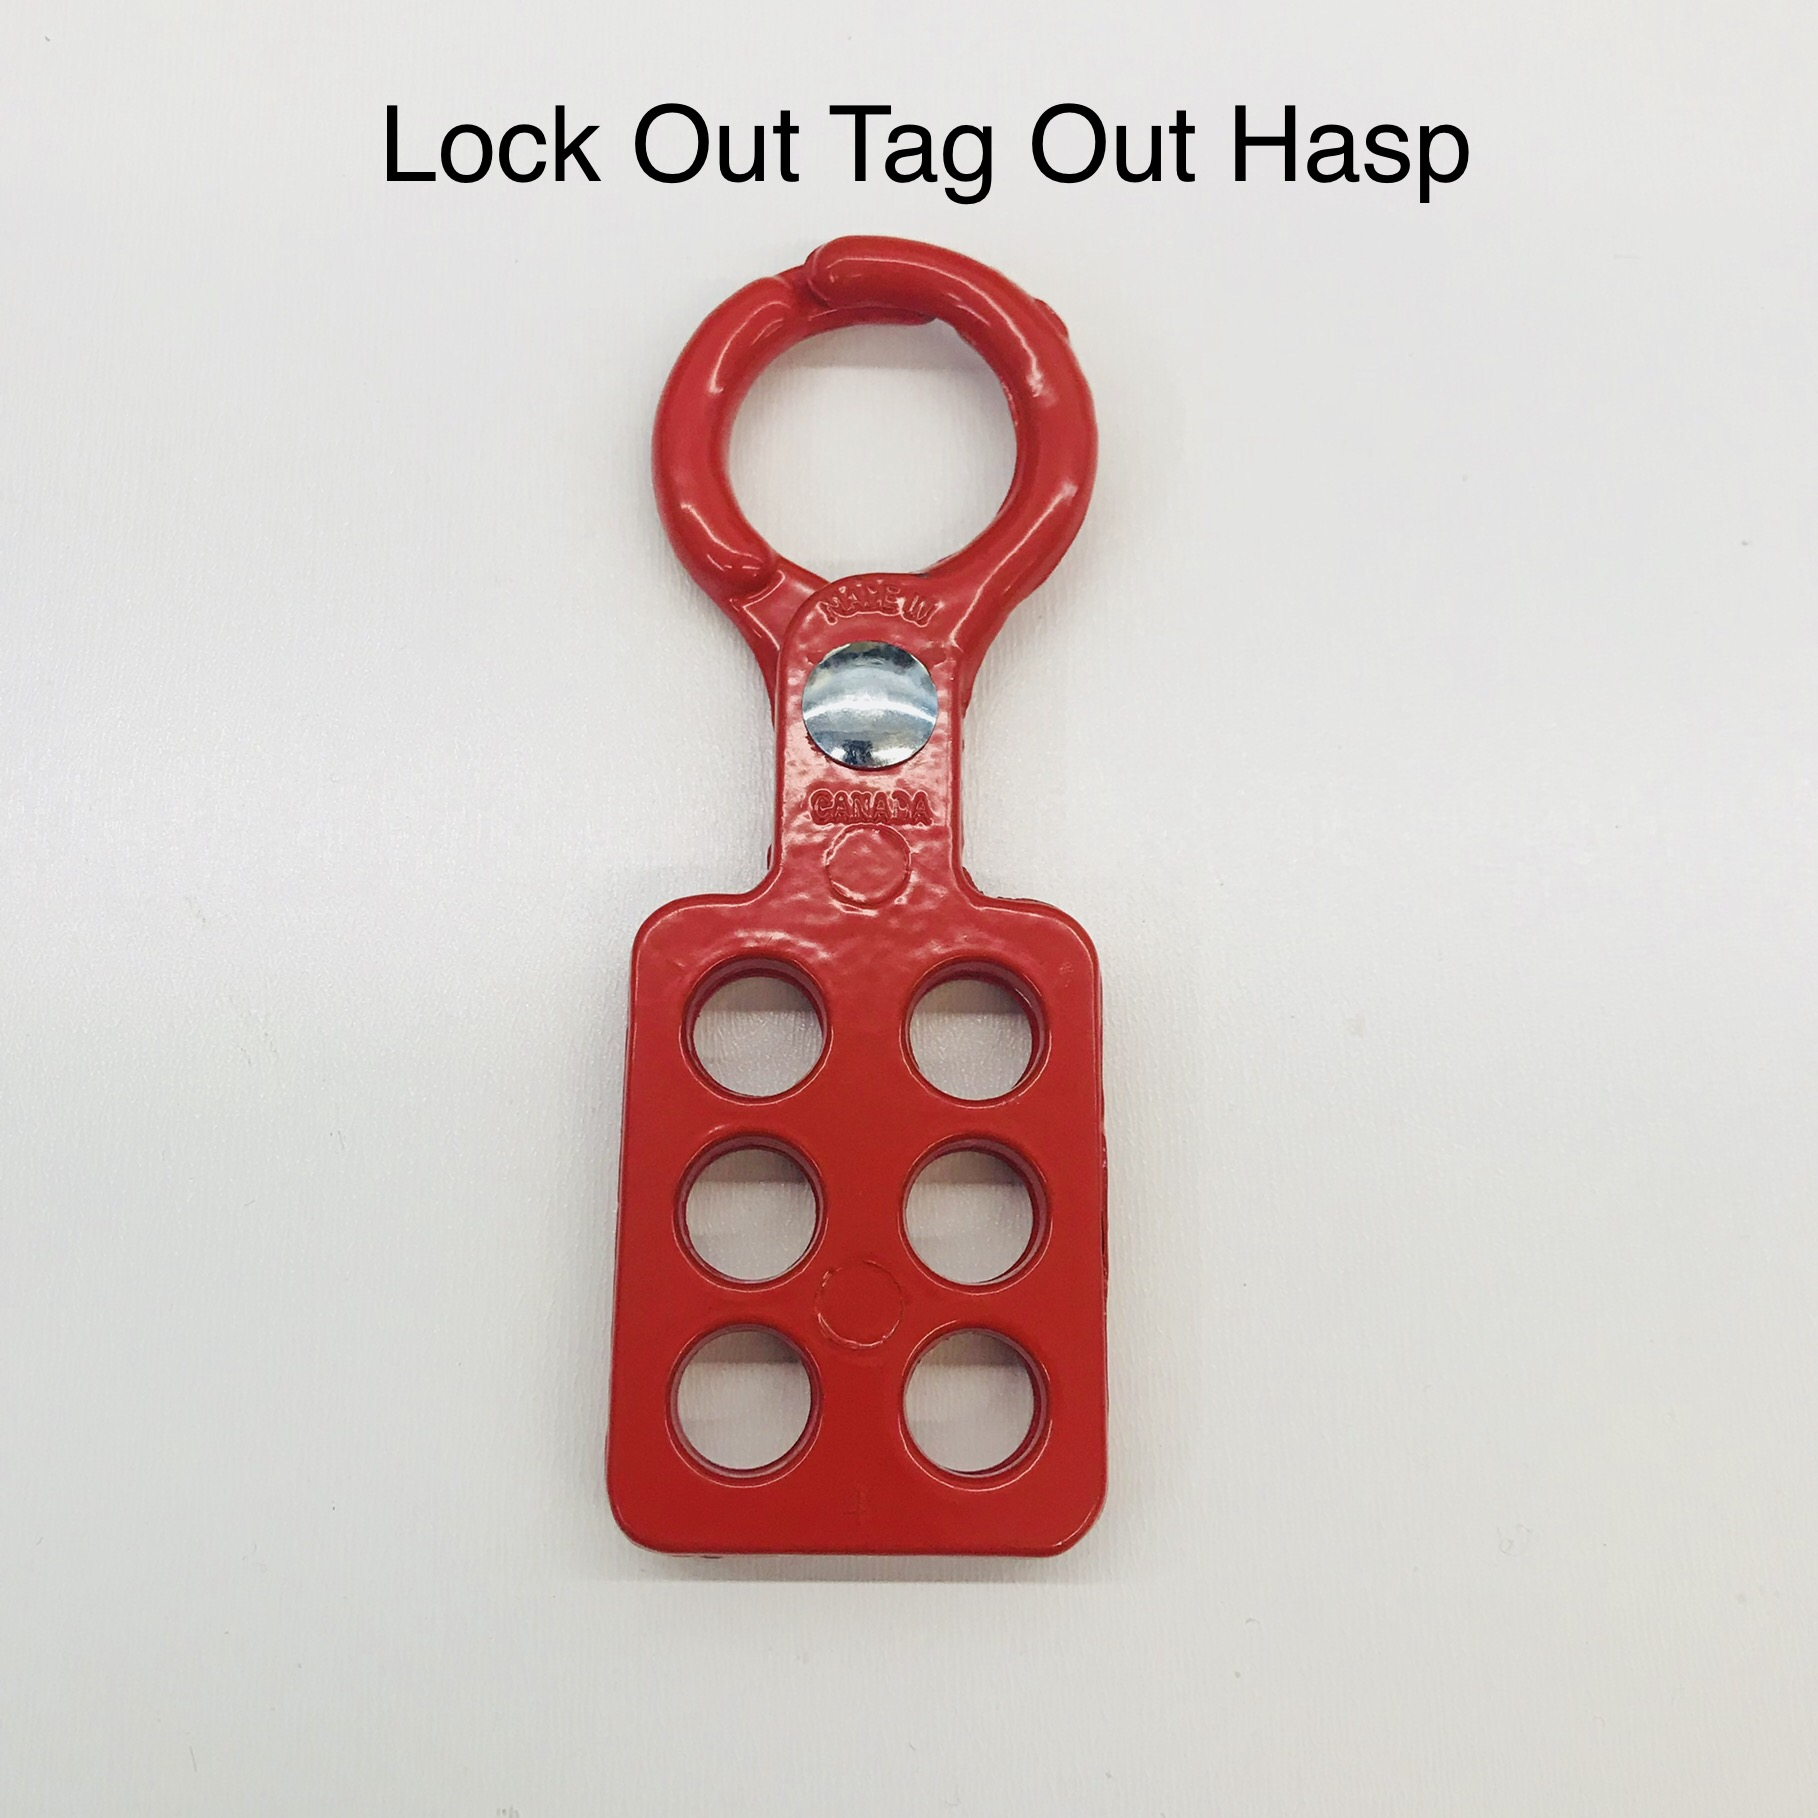 Lock Out Tag Out Hasp